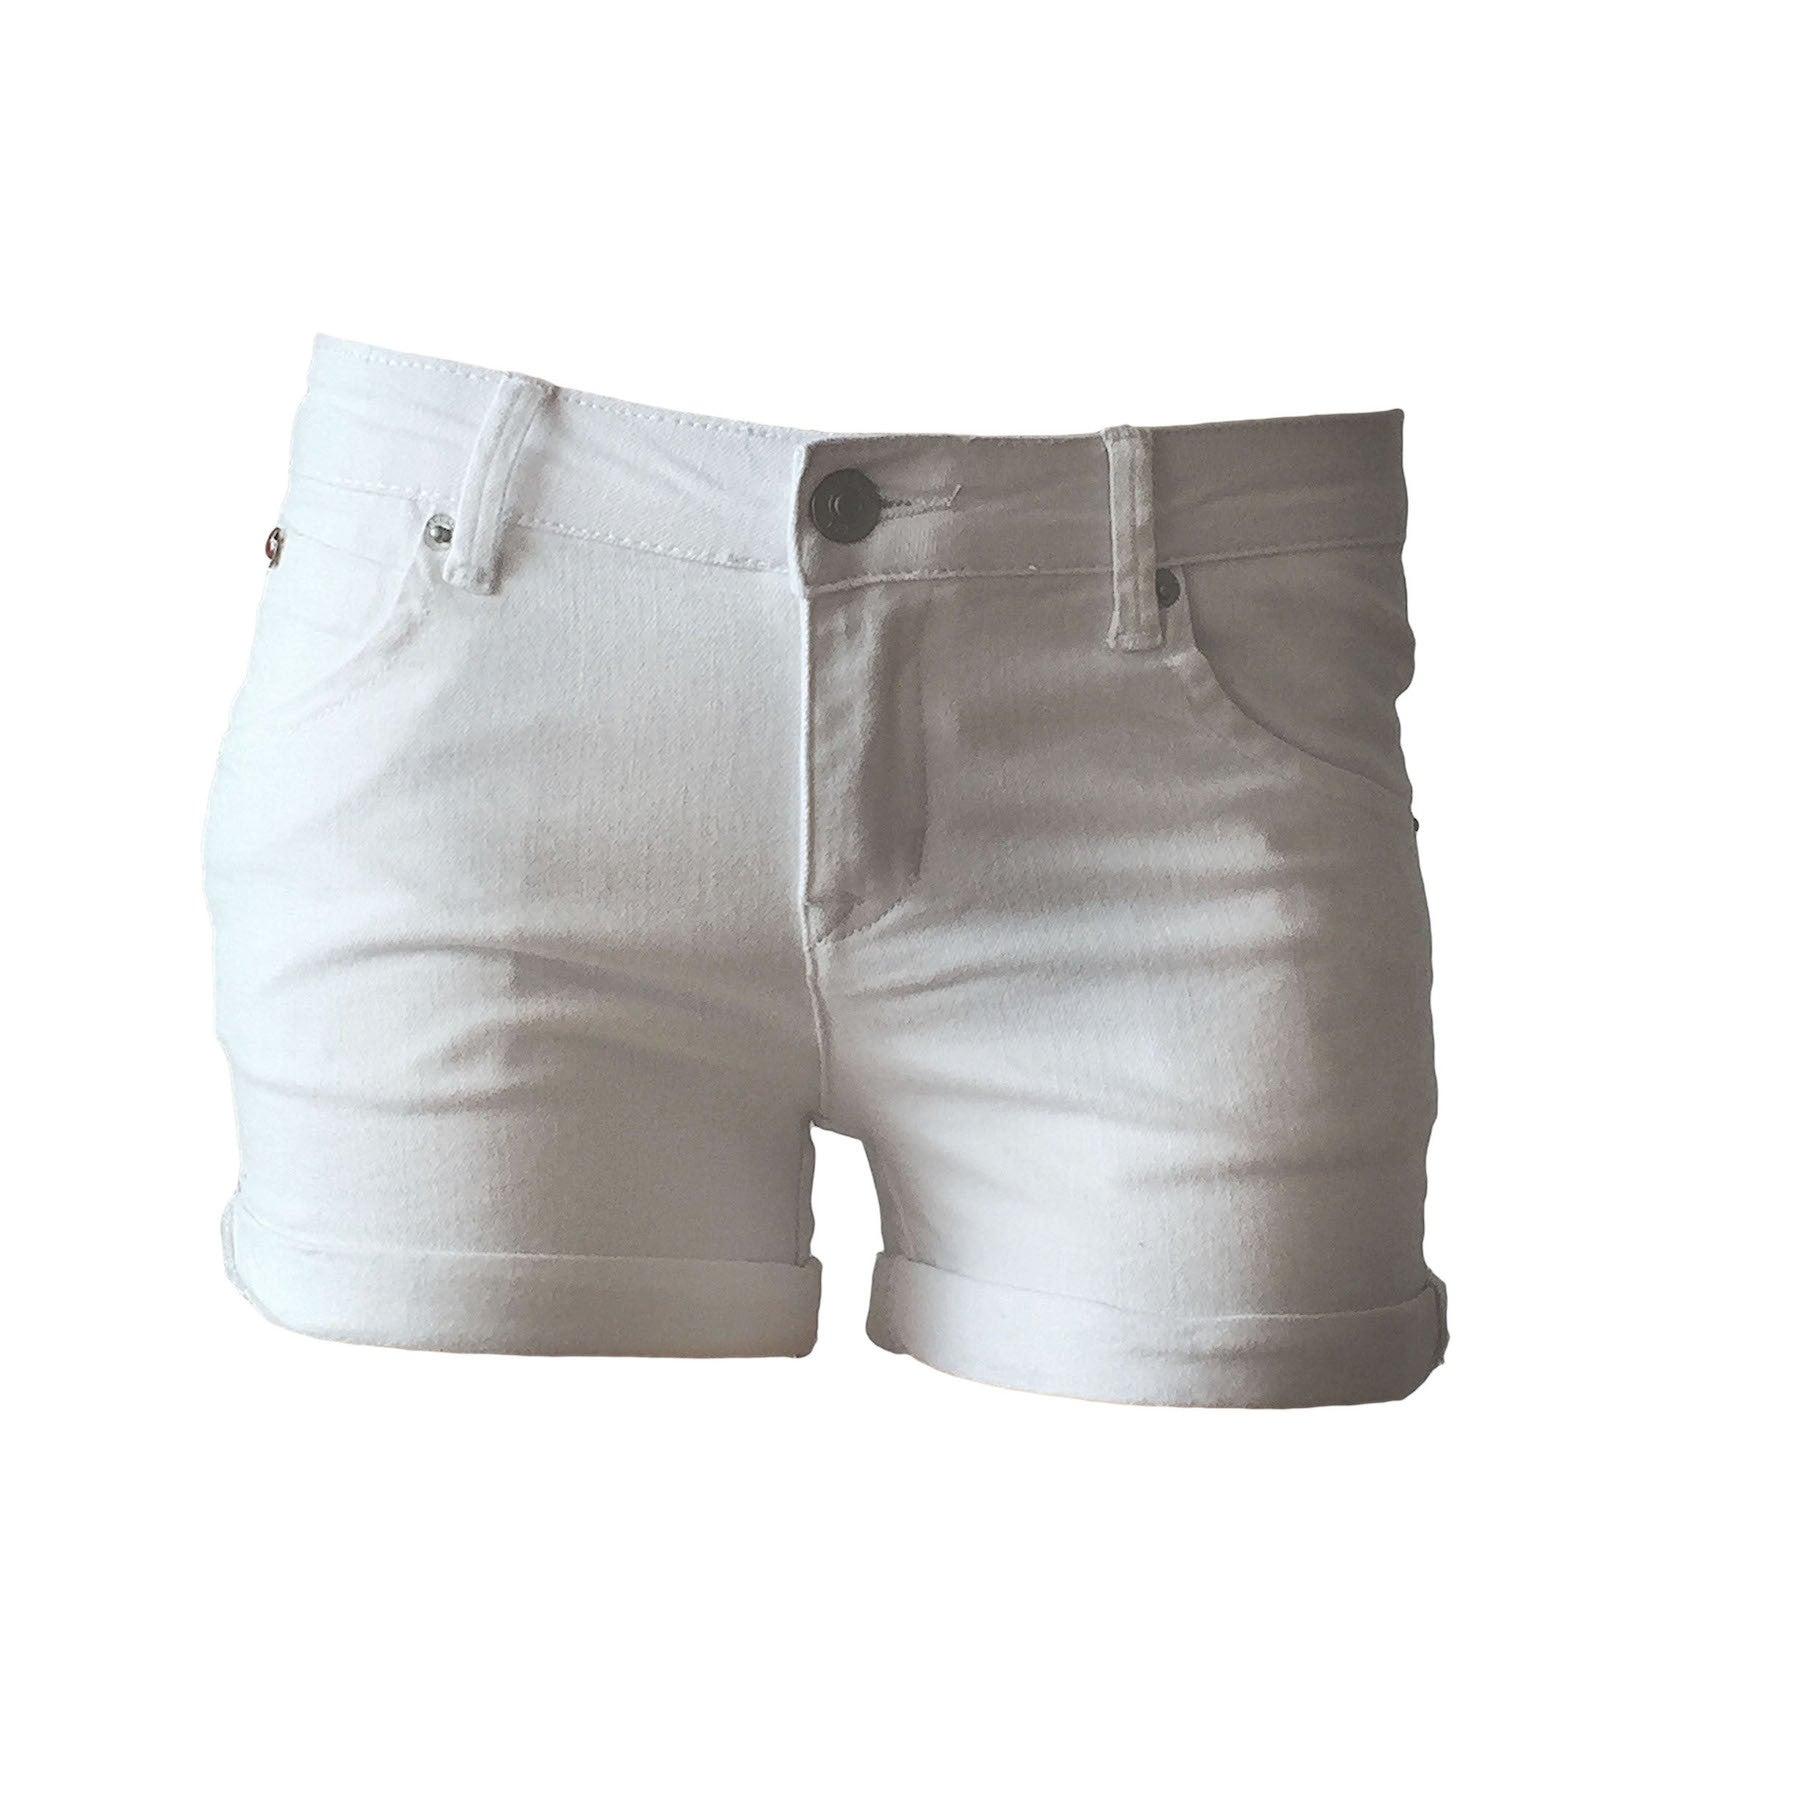 Snow denim cuffed shorts, white denim shorts, hudson denim shorts